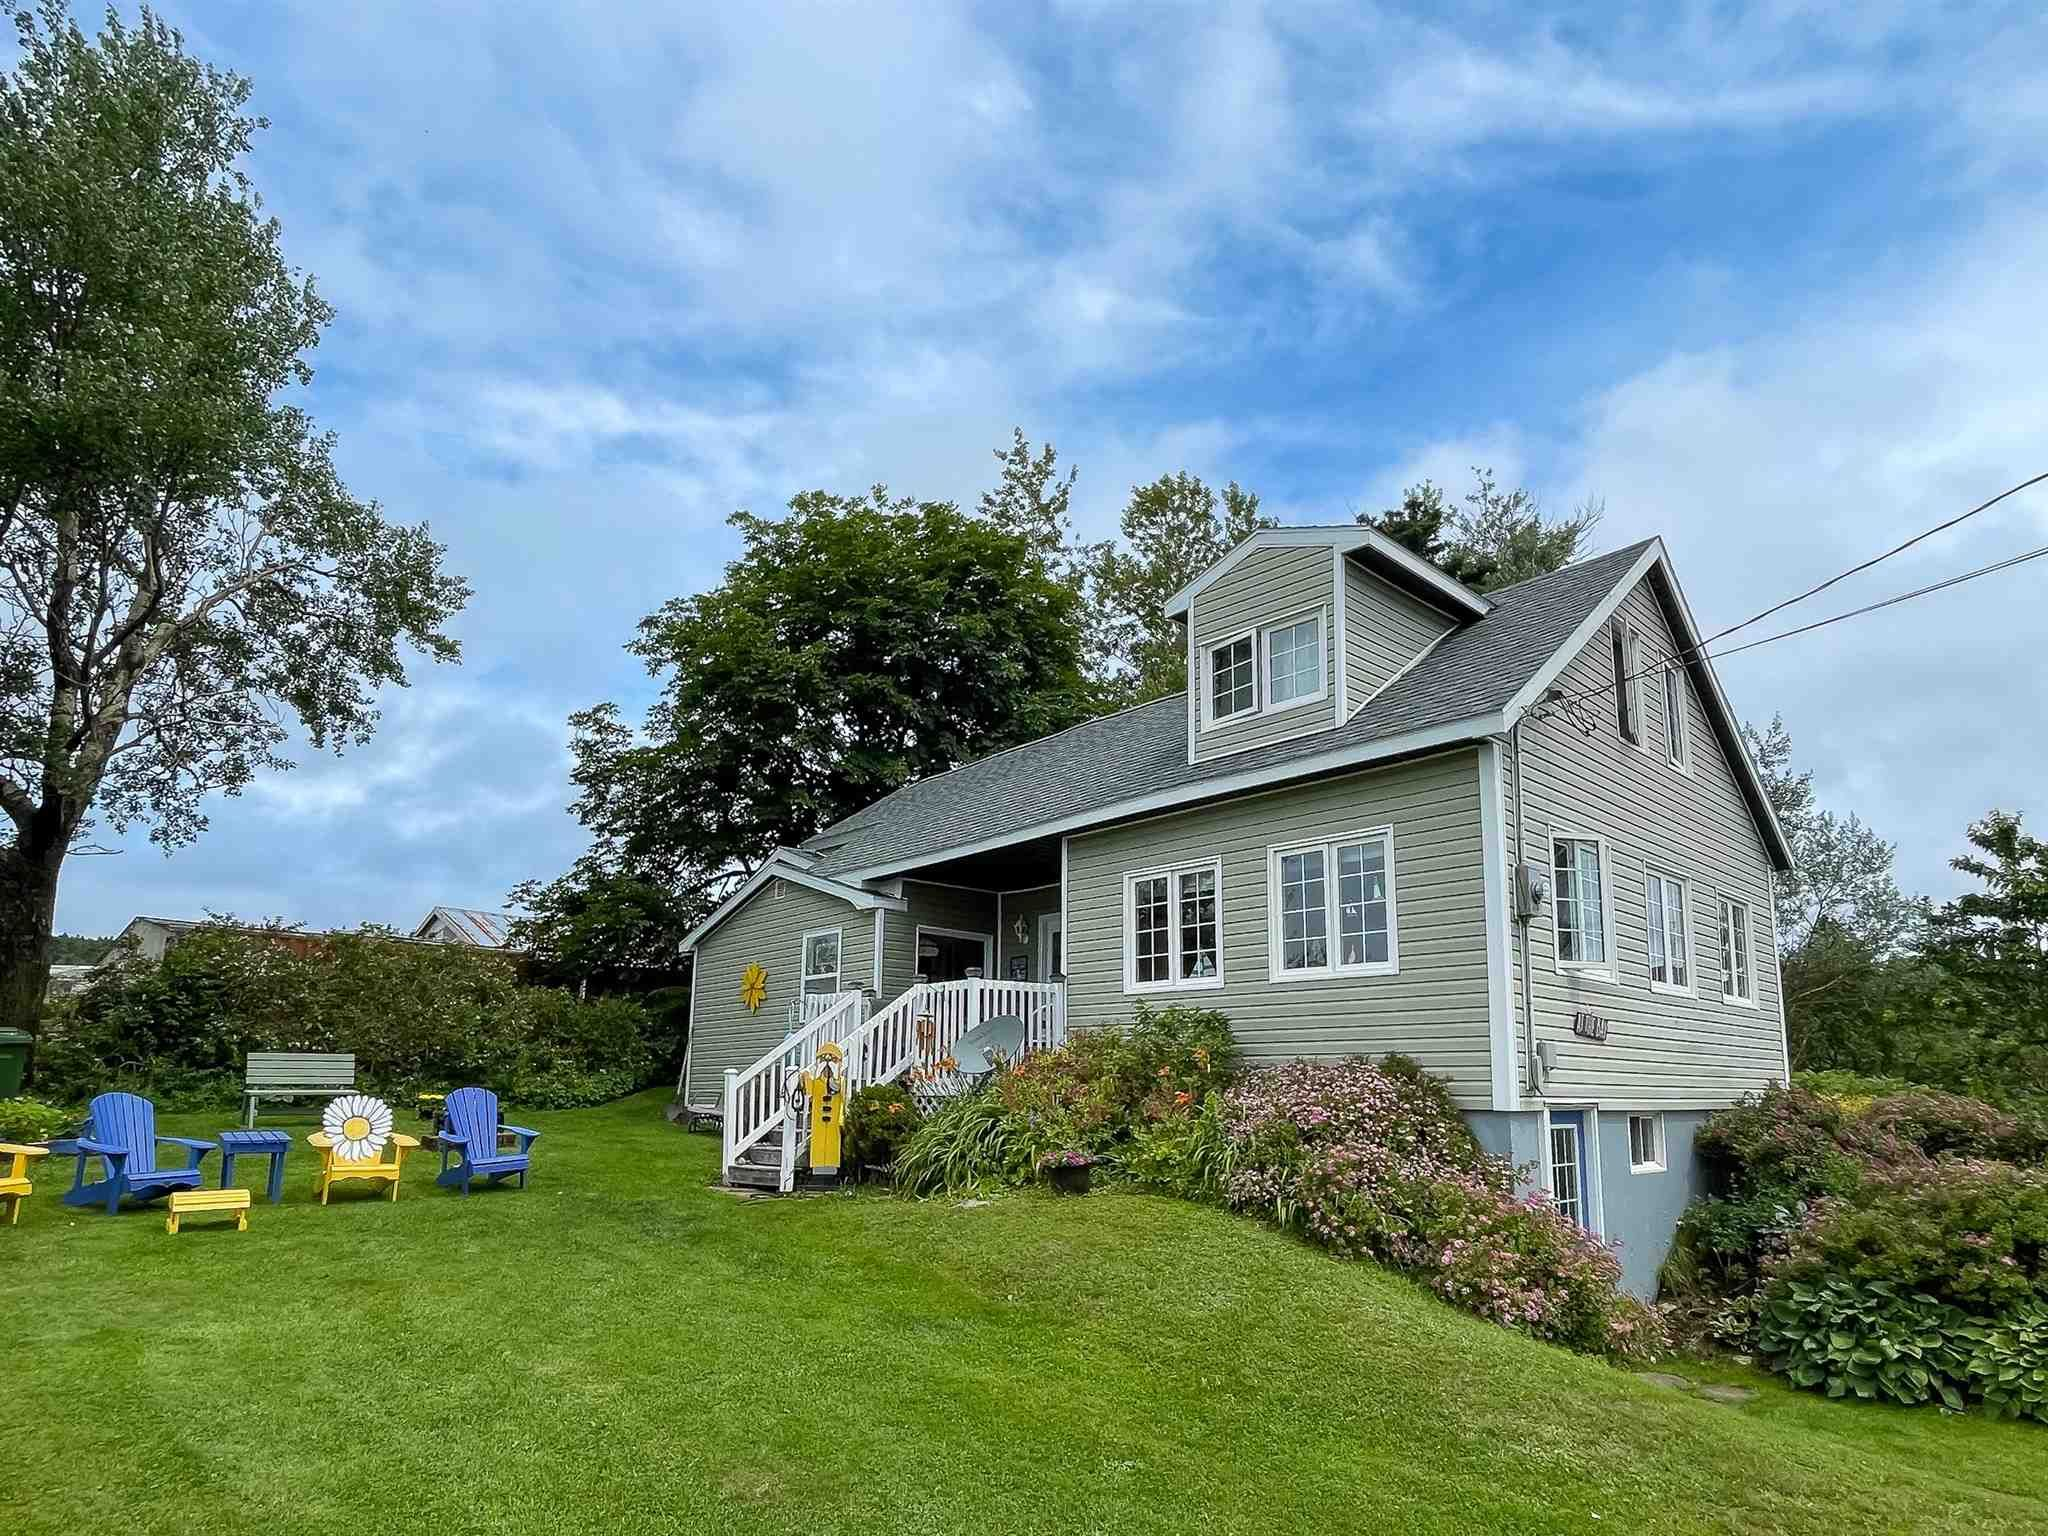 Main Photo: 1451 Cape Split Road in Scots Bay: 404-Kings County Residential for sale (Annapolis Valley)  : MLS®# 202118743